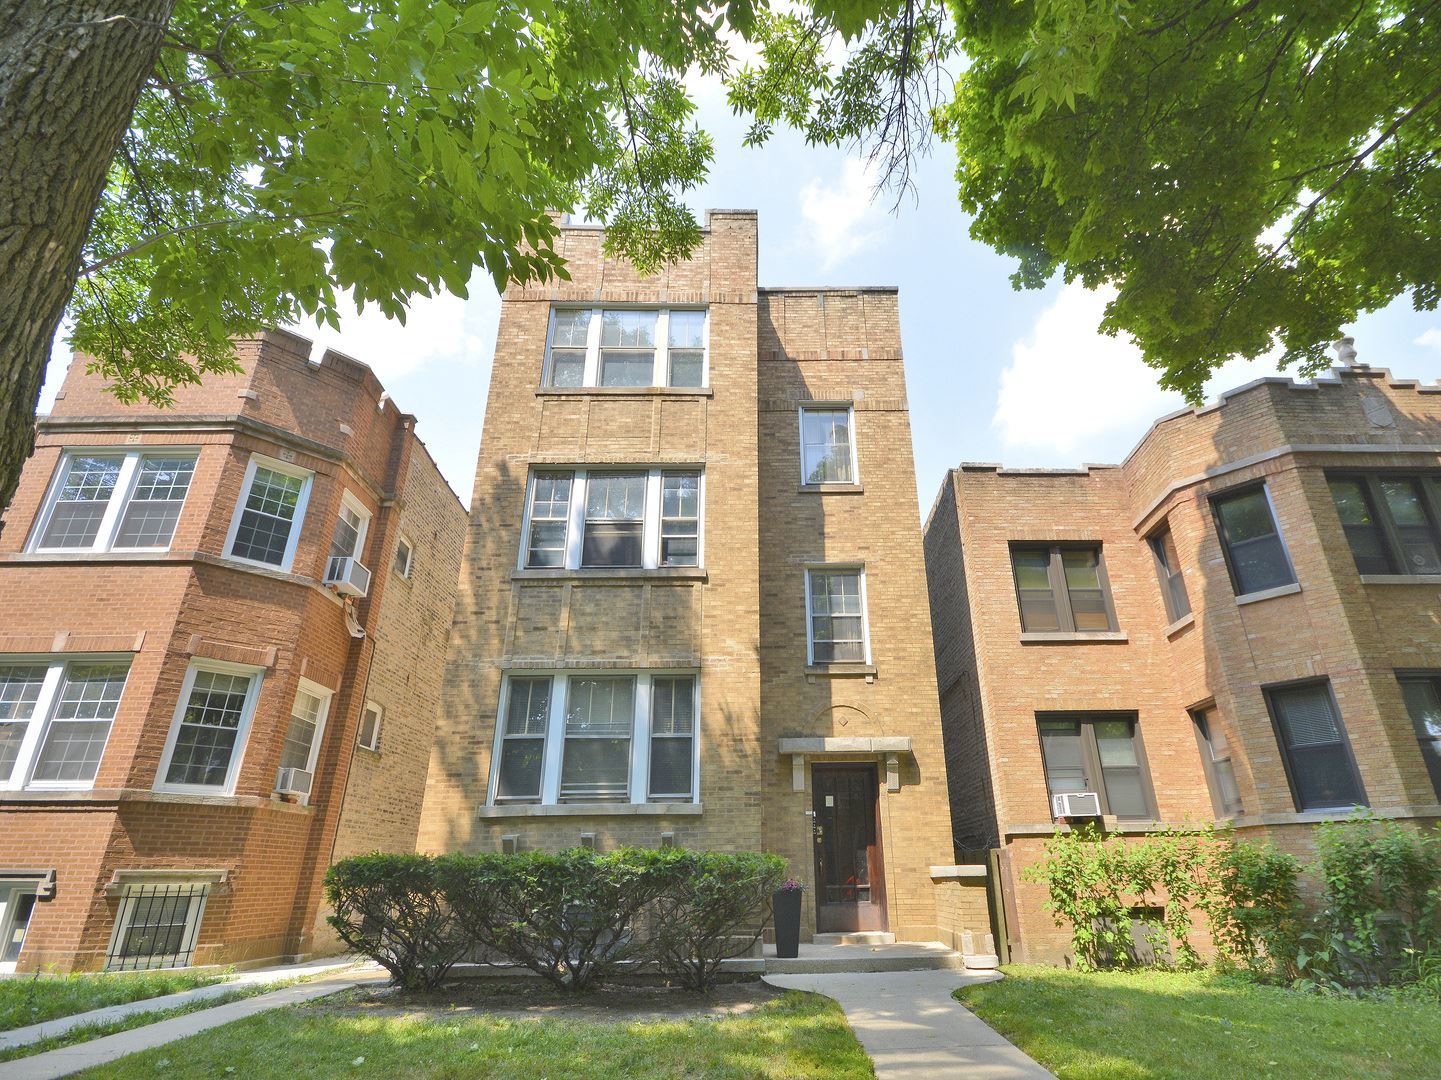 5652 N ROCKWELL Street, Chicago, IL 60659 - #: 10786648